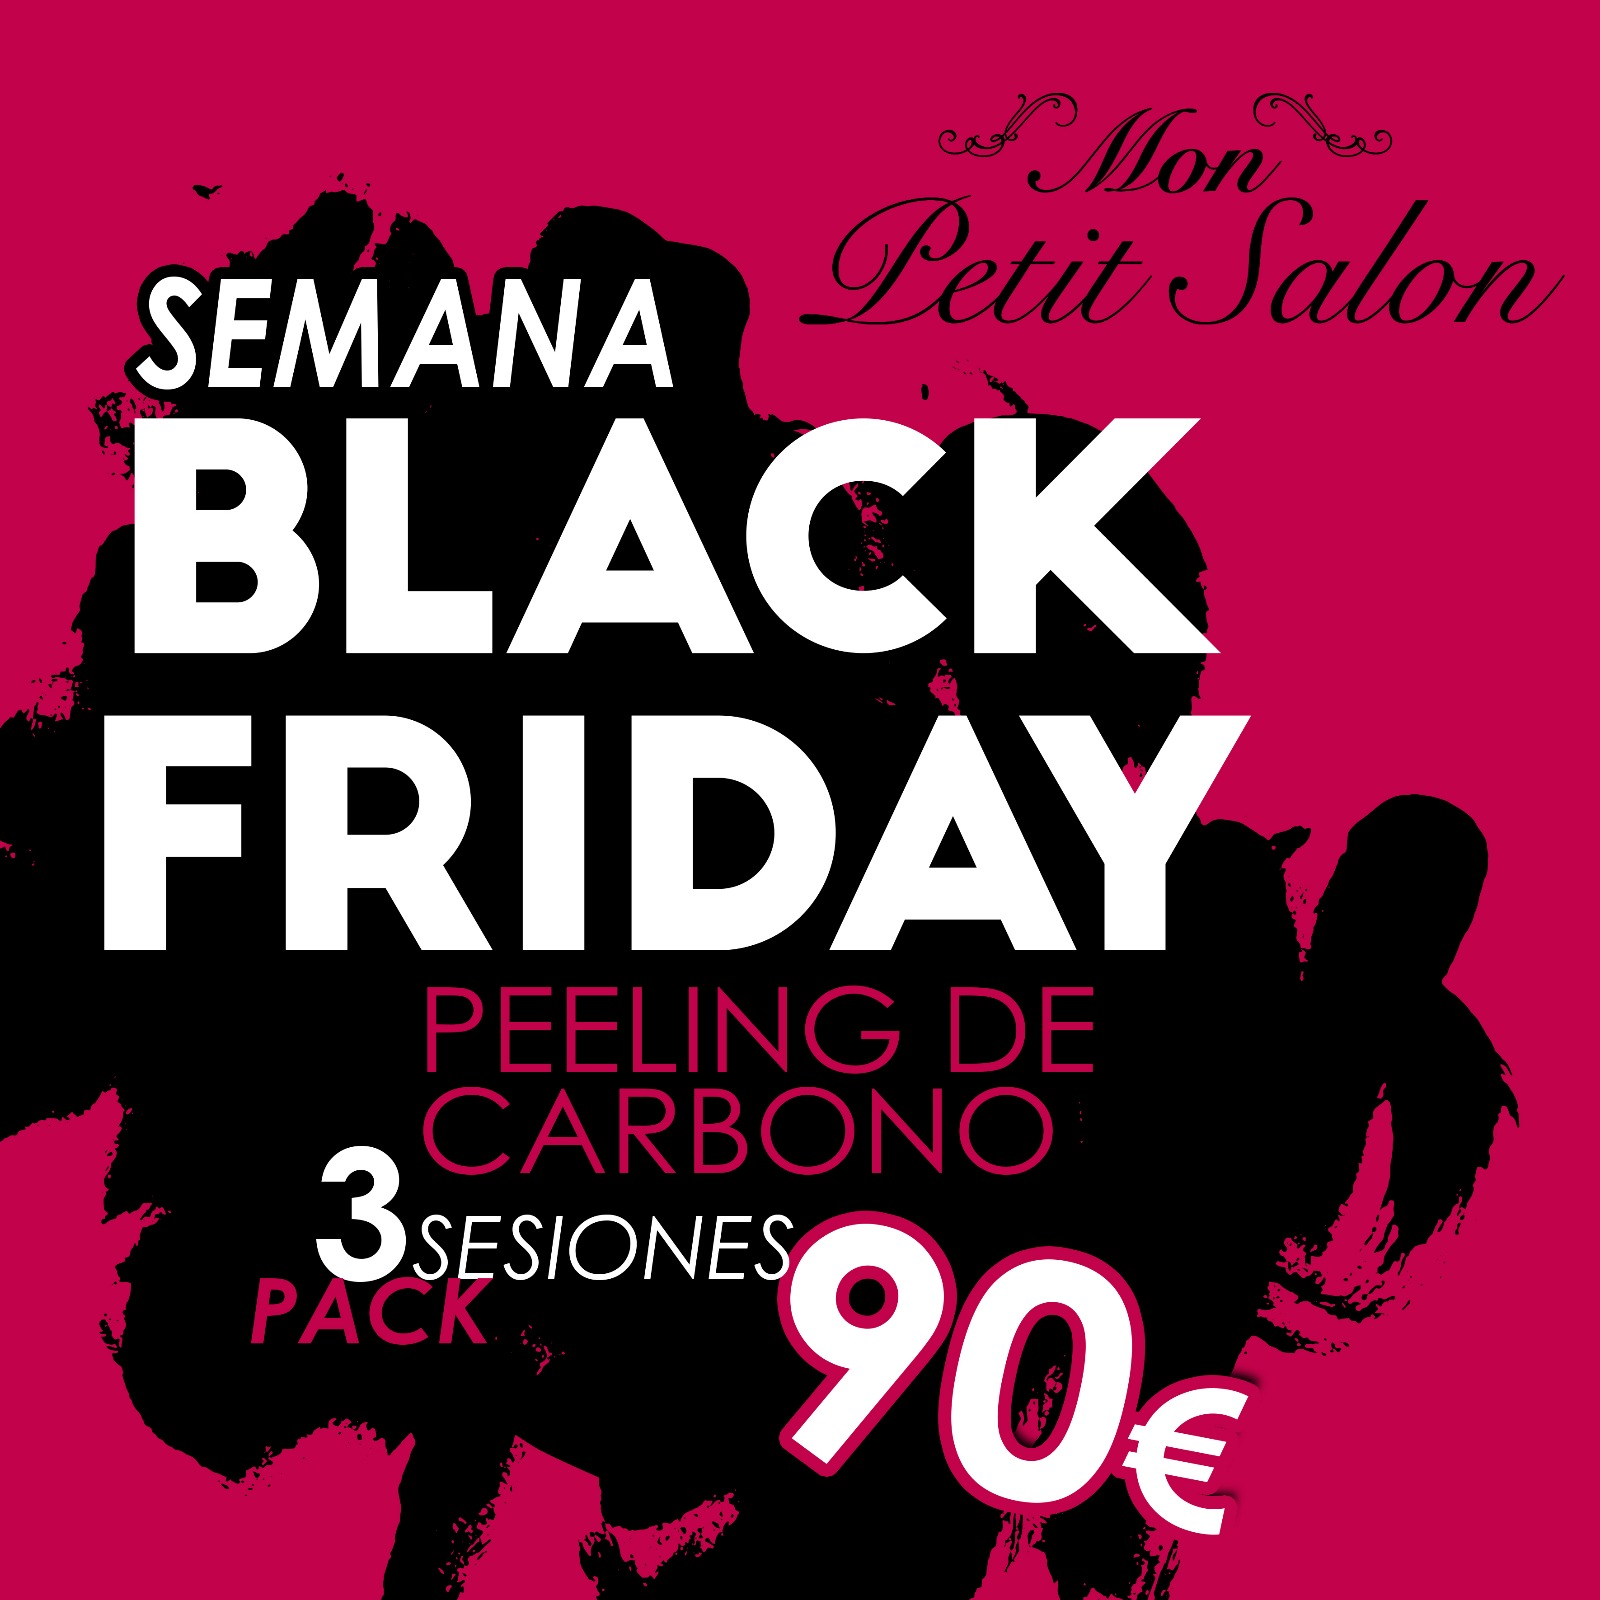 BLACK FRIDAY Mon Petit Salon Oferta peeling carbon